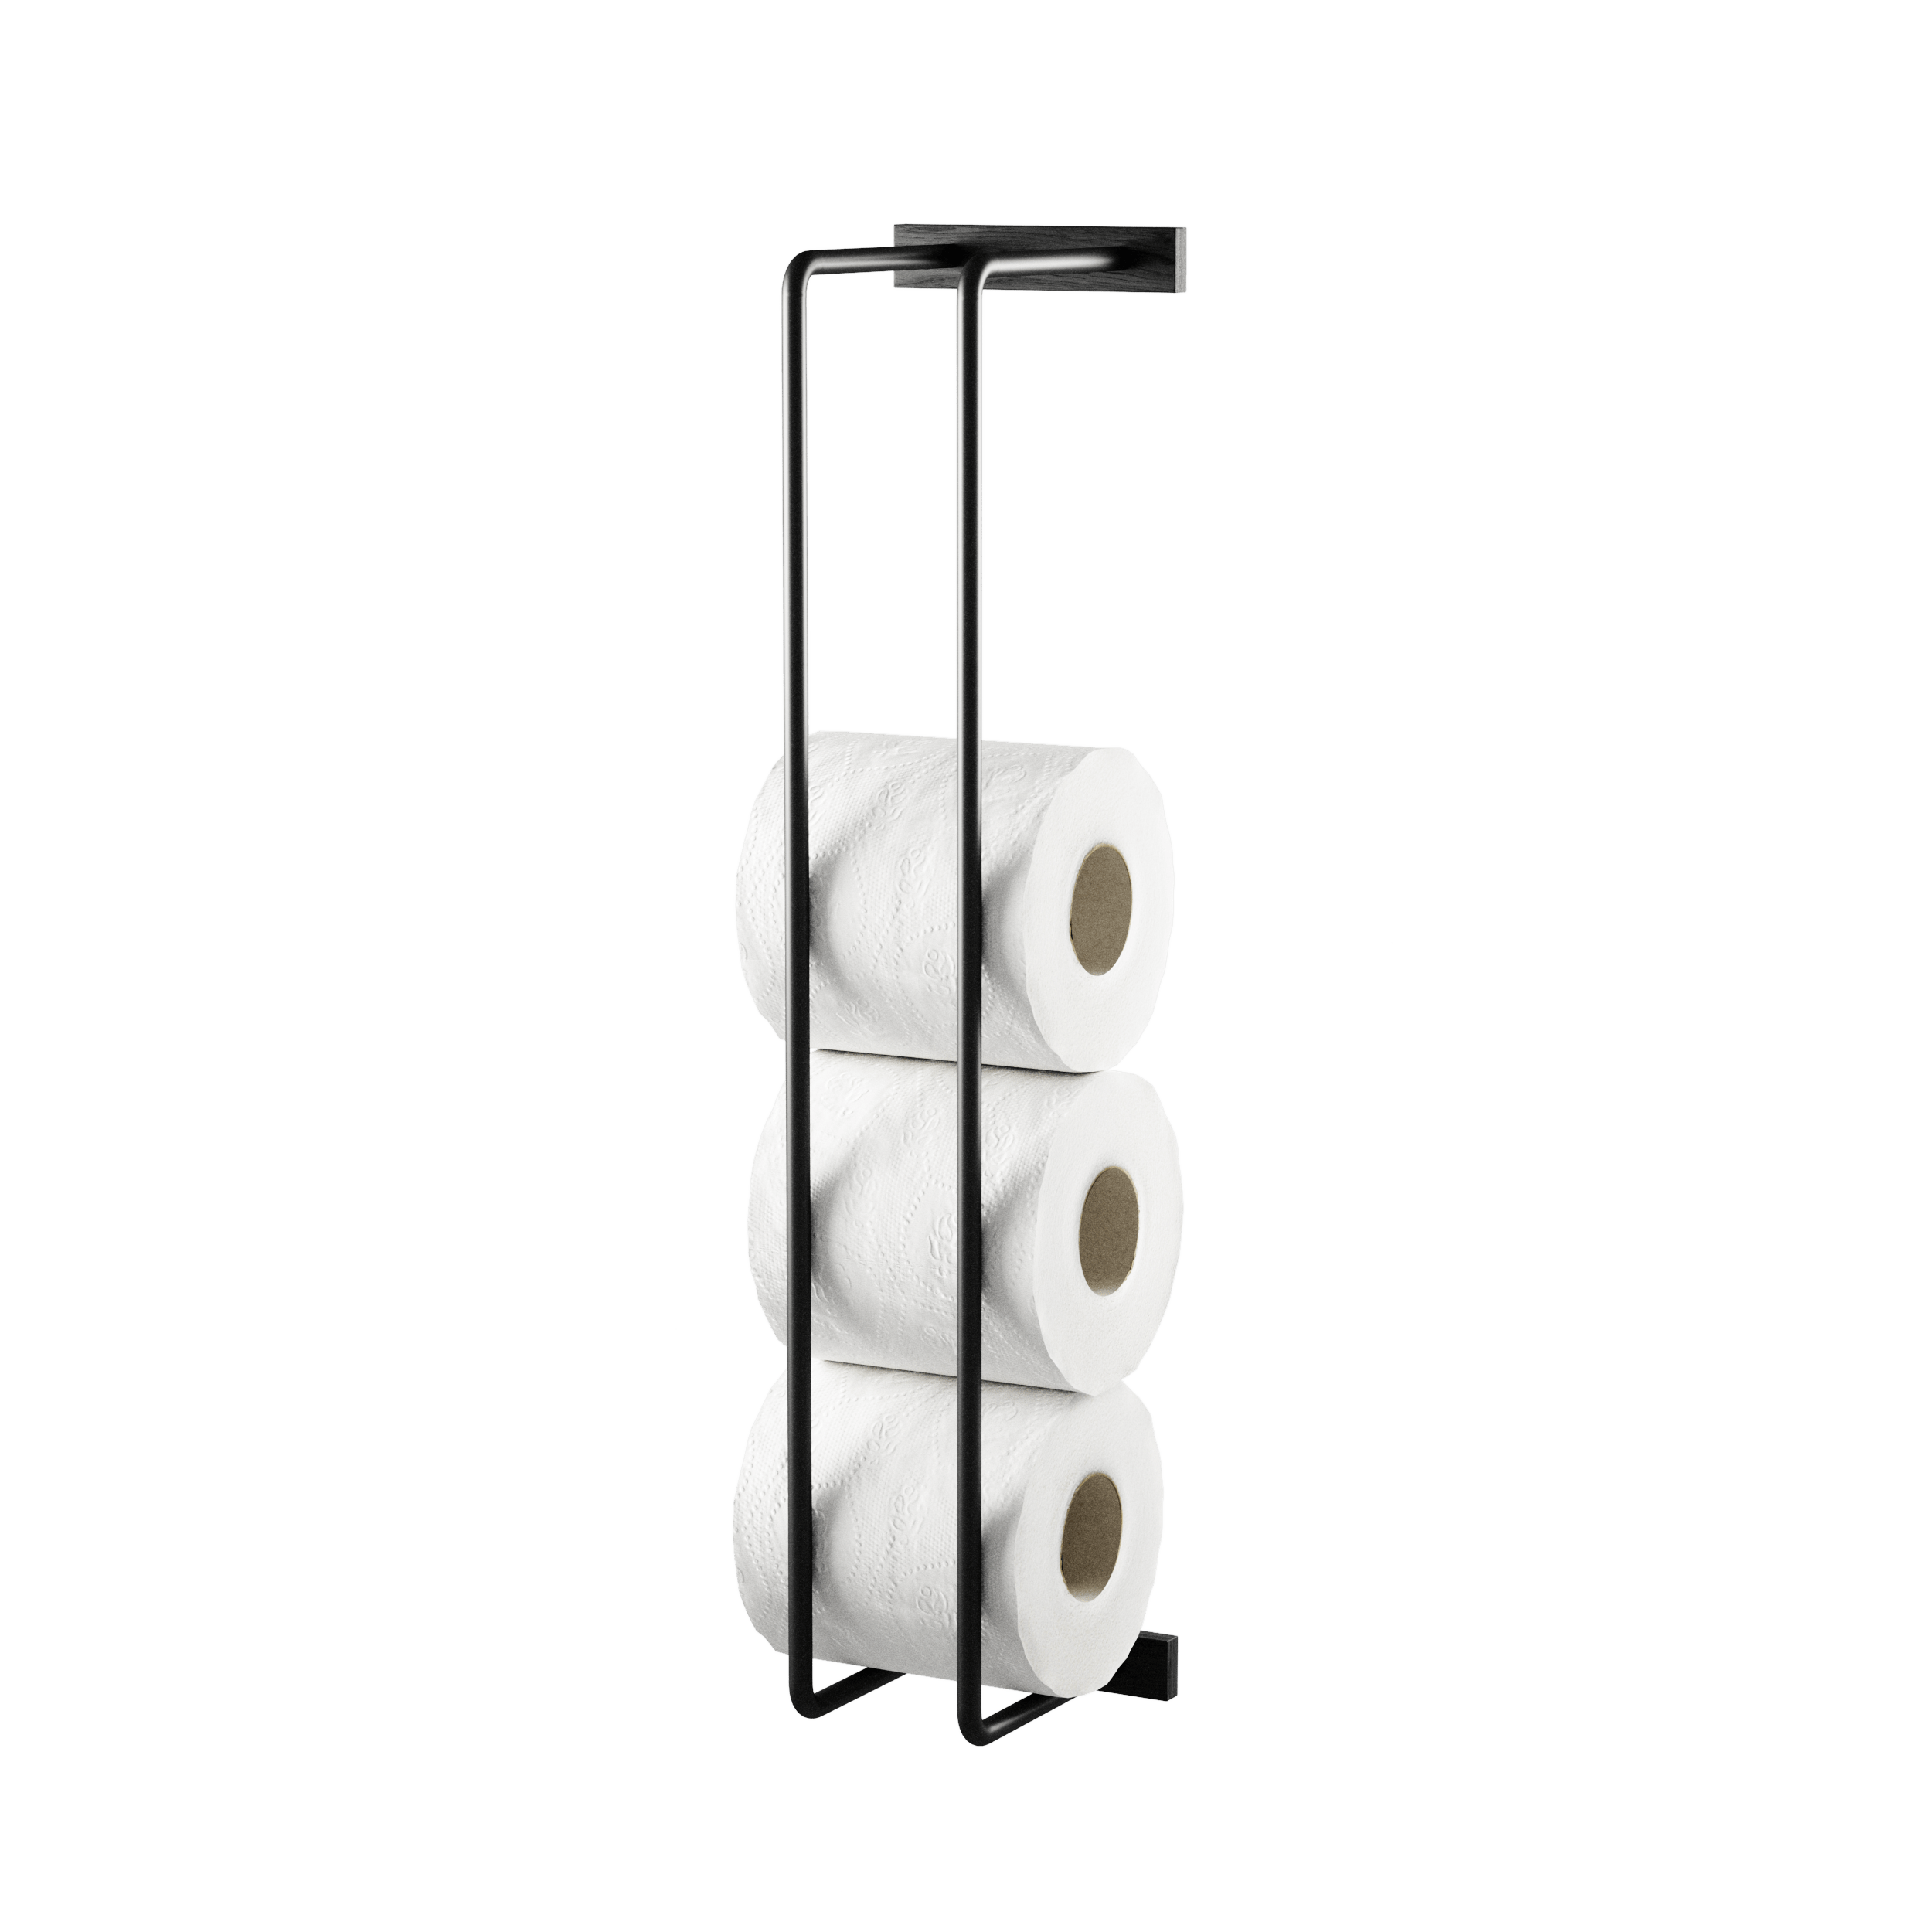 Bathroom Rack Black toilet paper